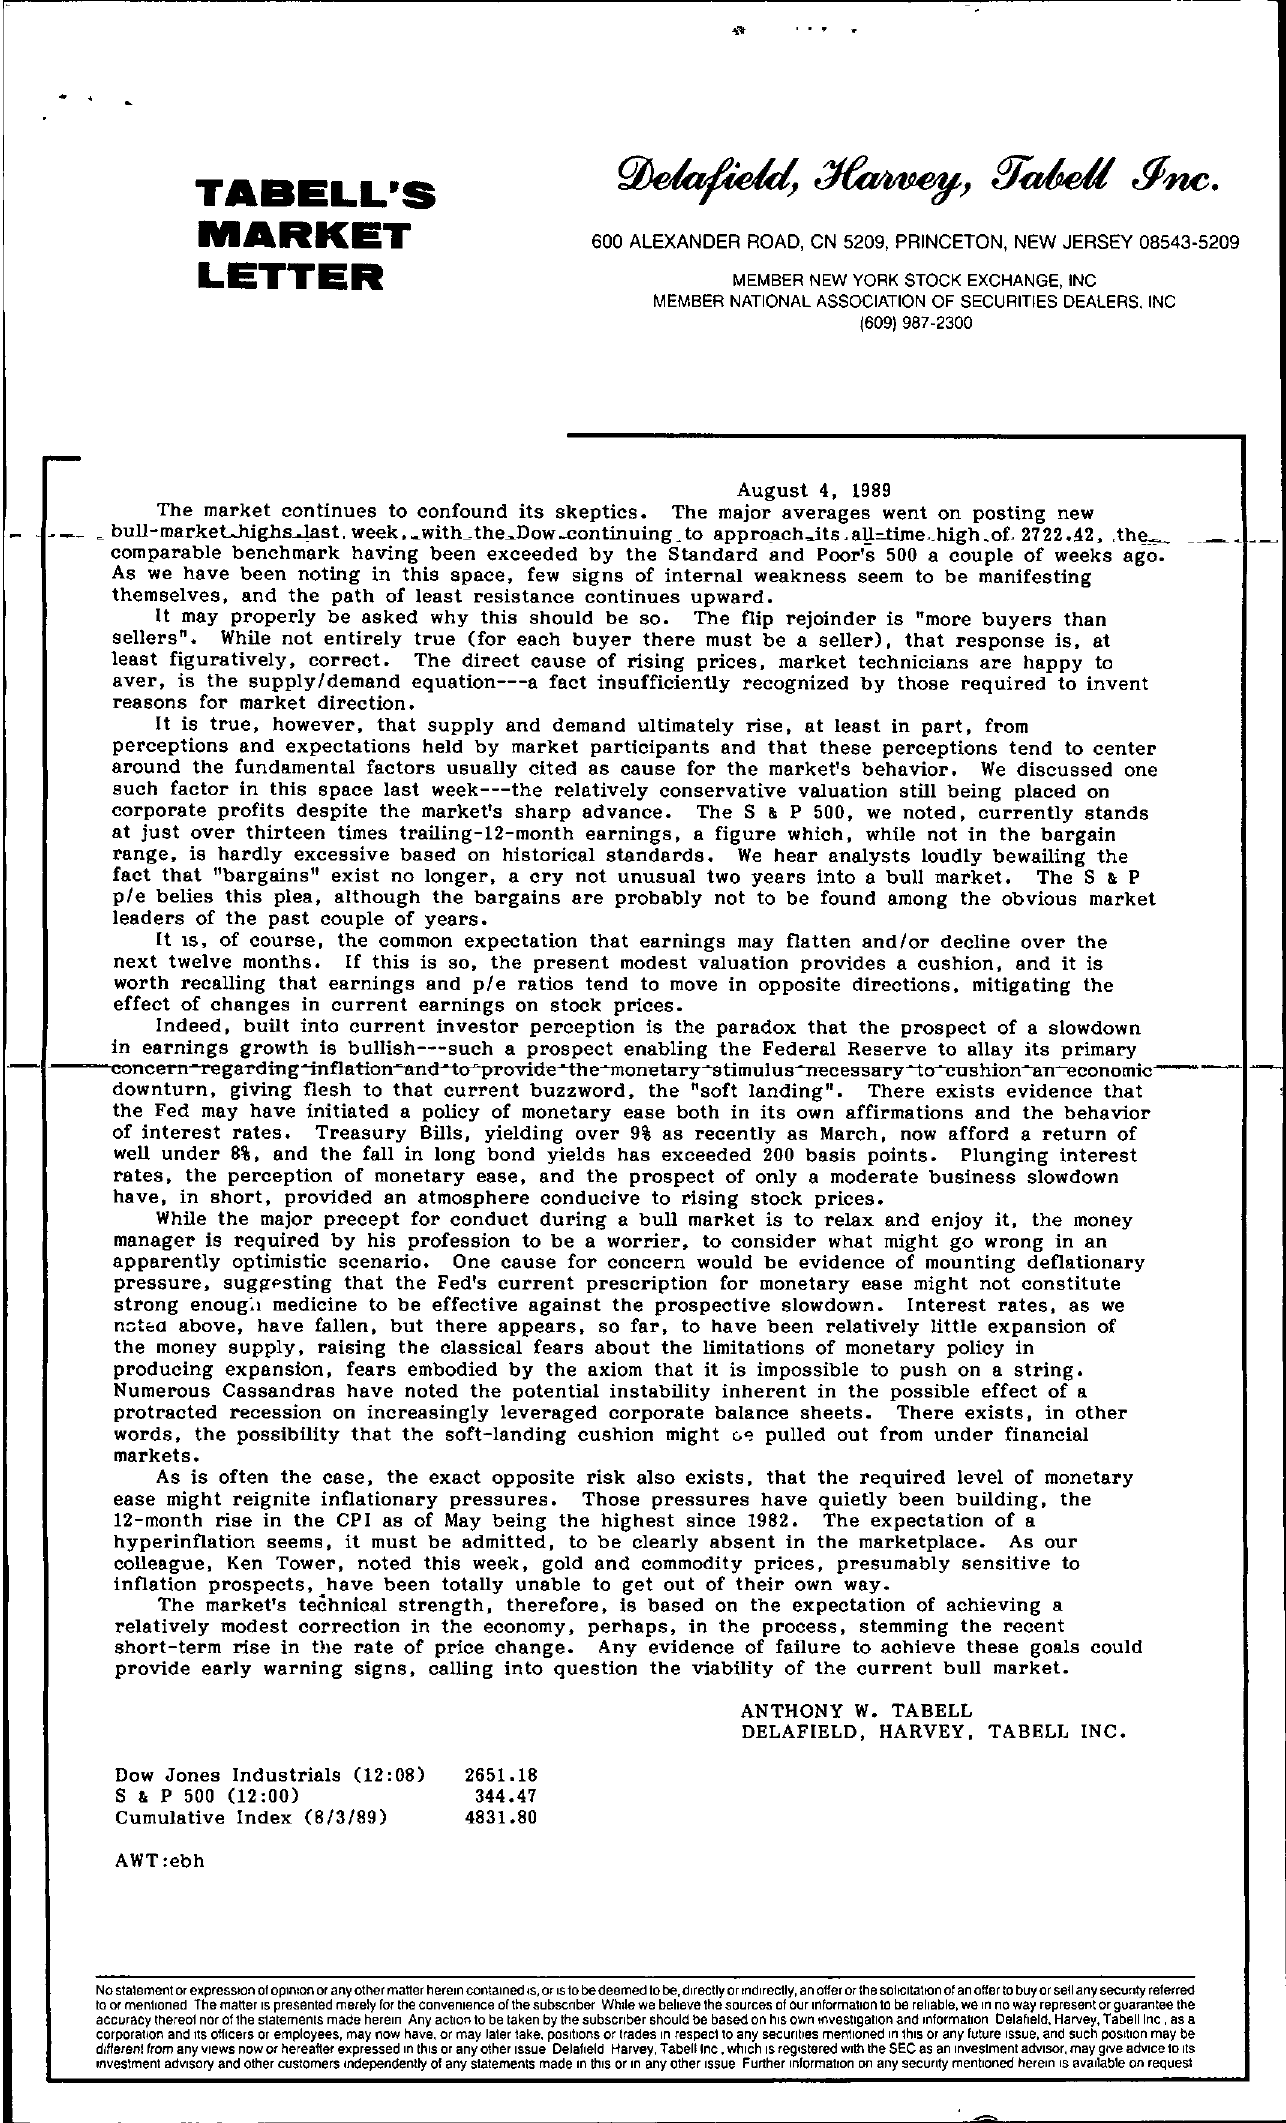 Tabell's Market Letter - August 04, 1989